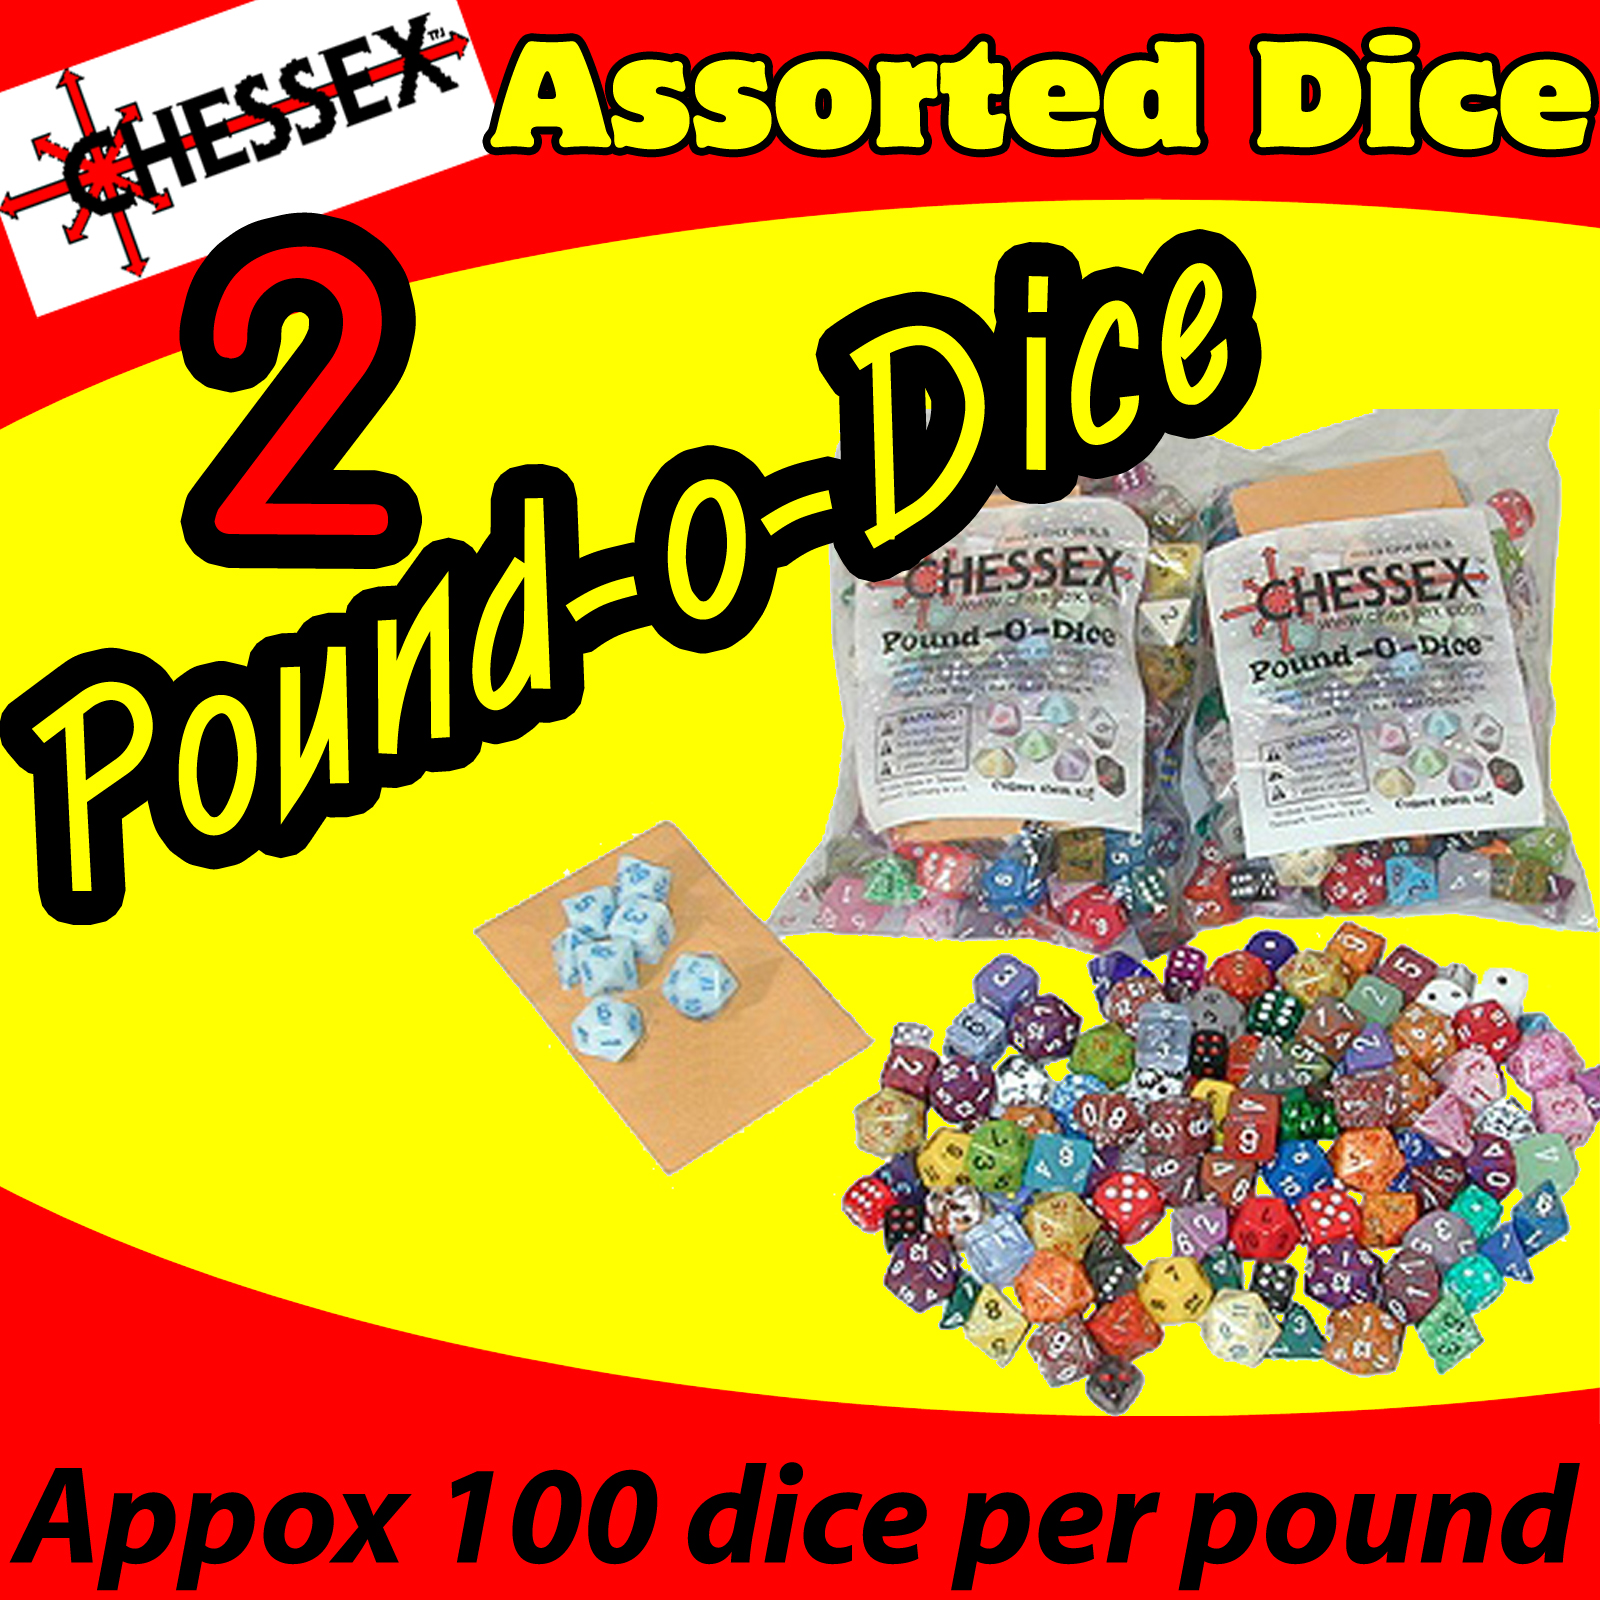 Chessex Pound O Dice (2 lbs) USA SHIPPING